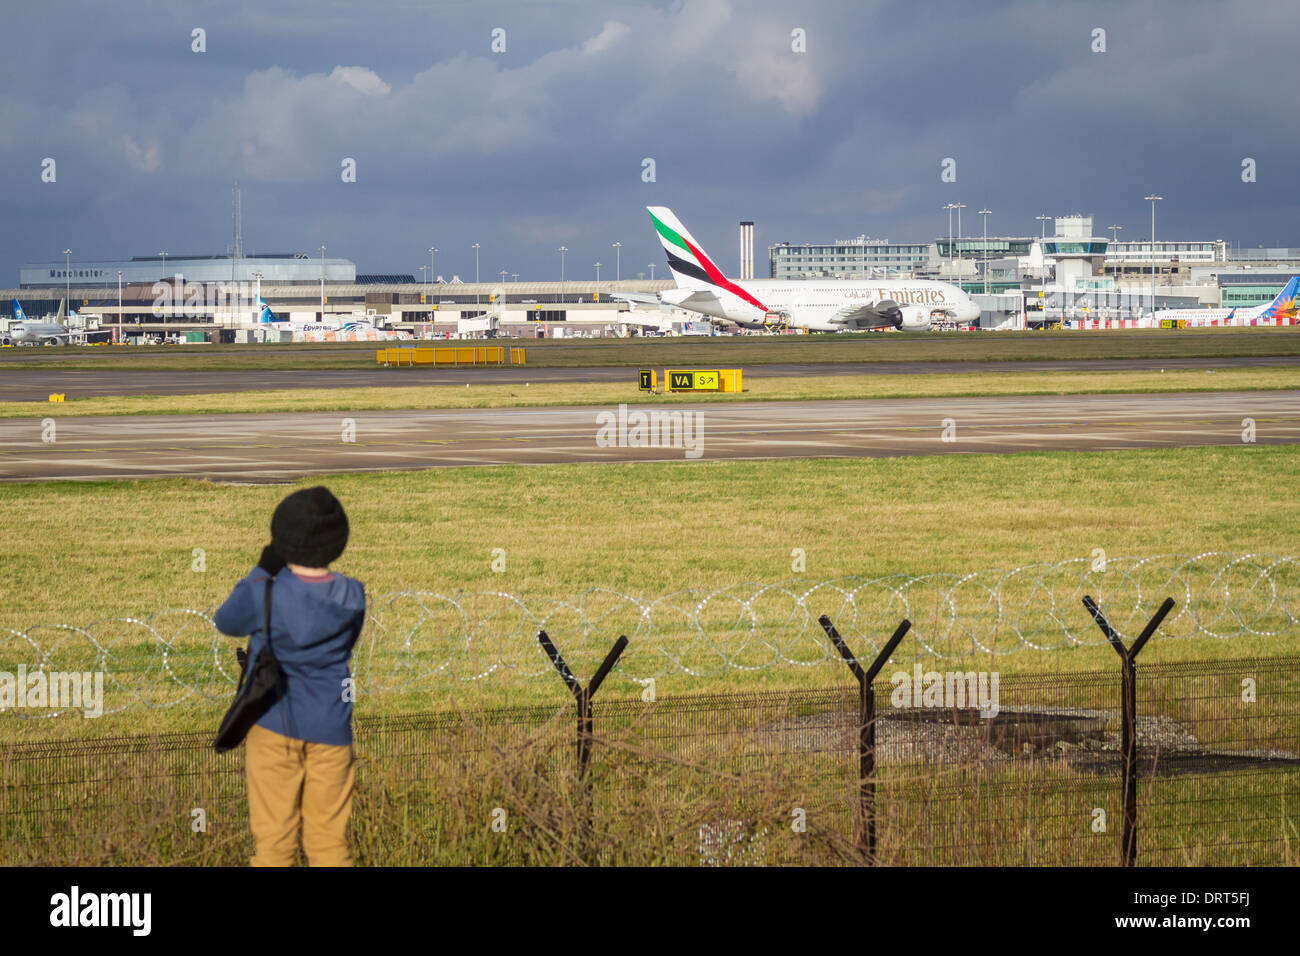 Young boy watching airplanes at Manchester Airport - Stock Image